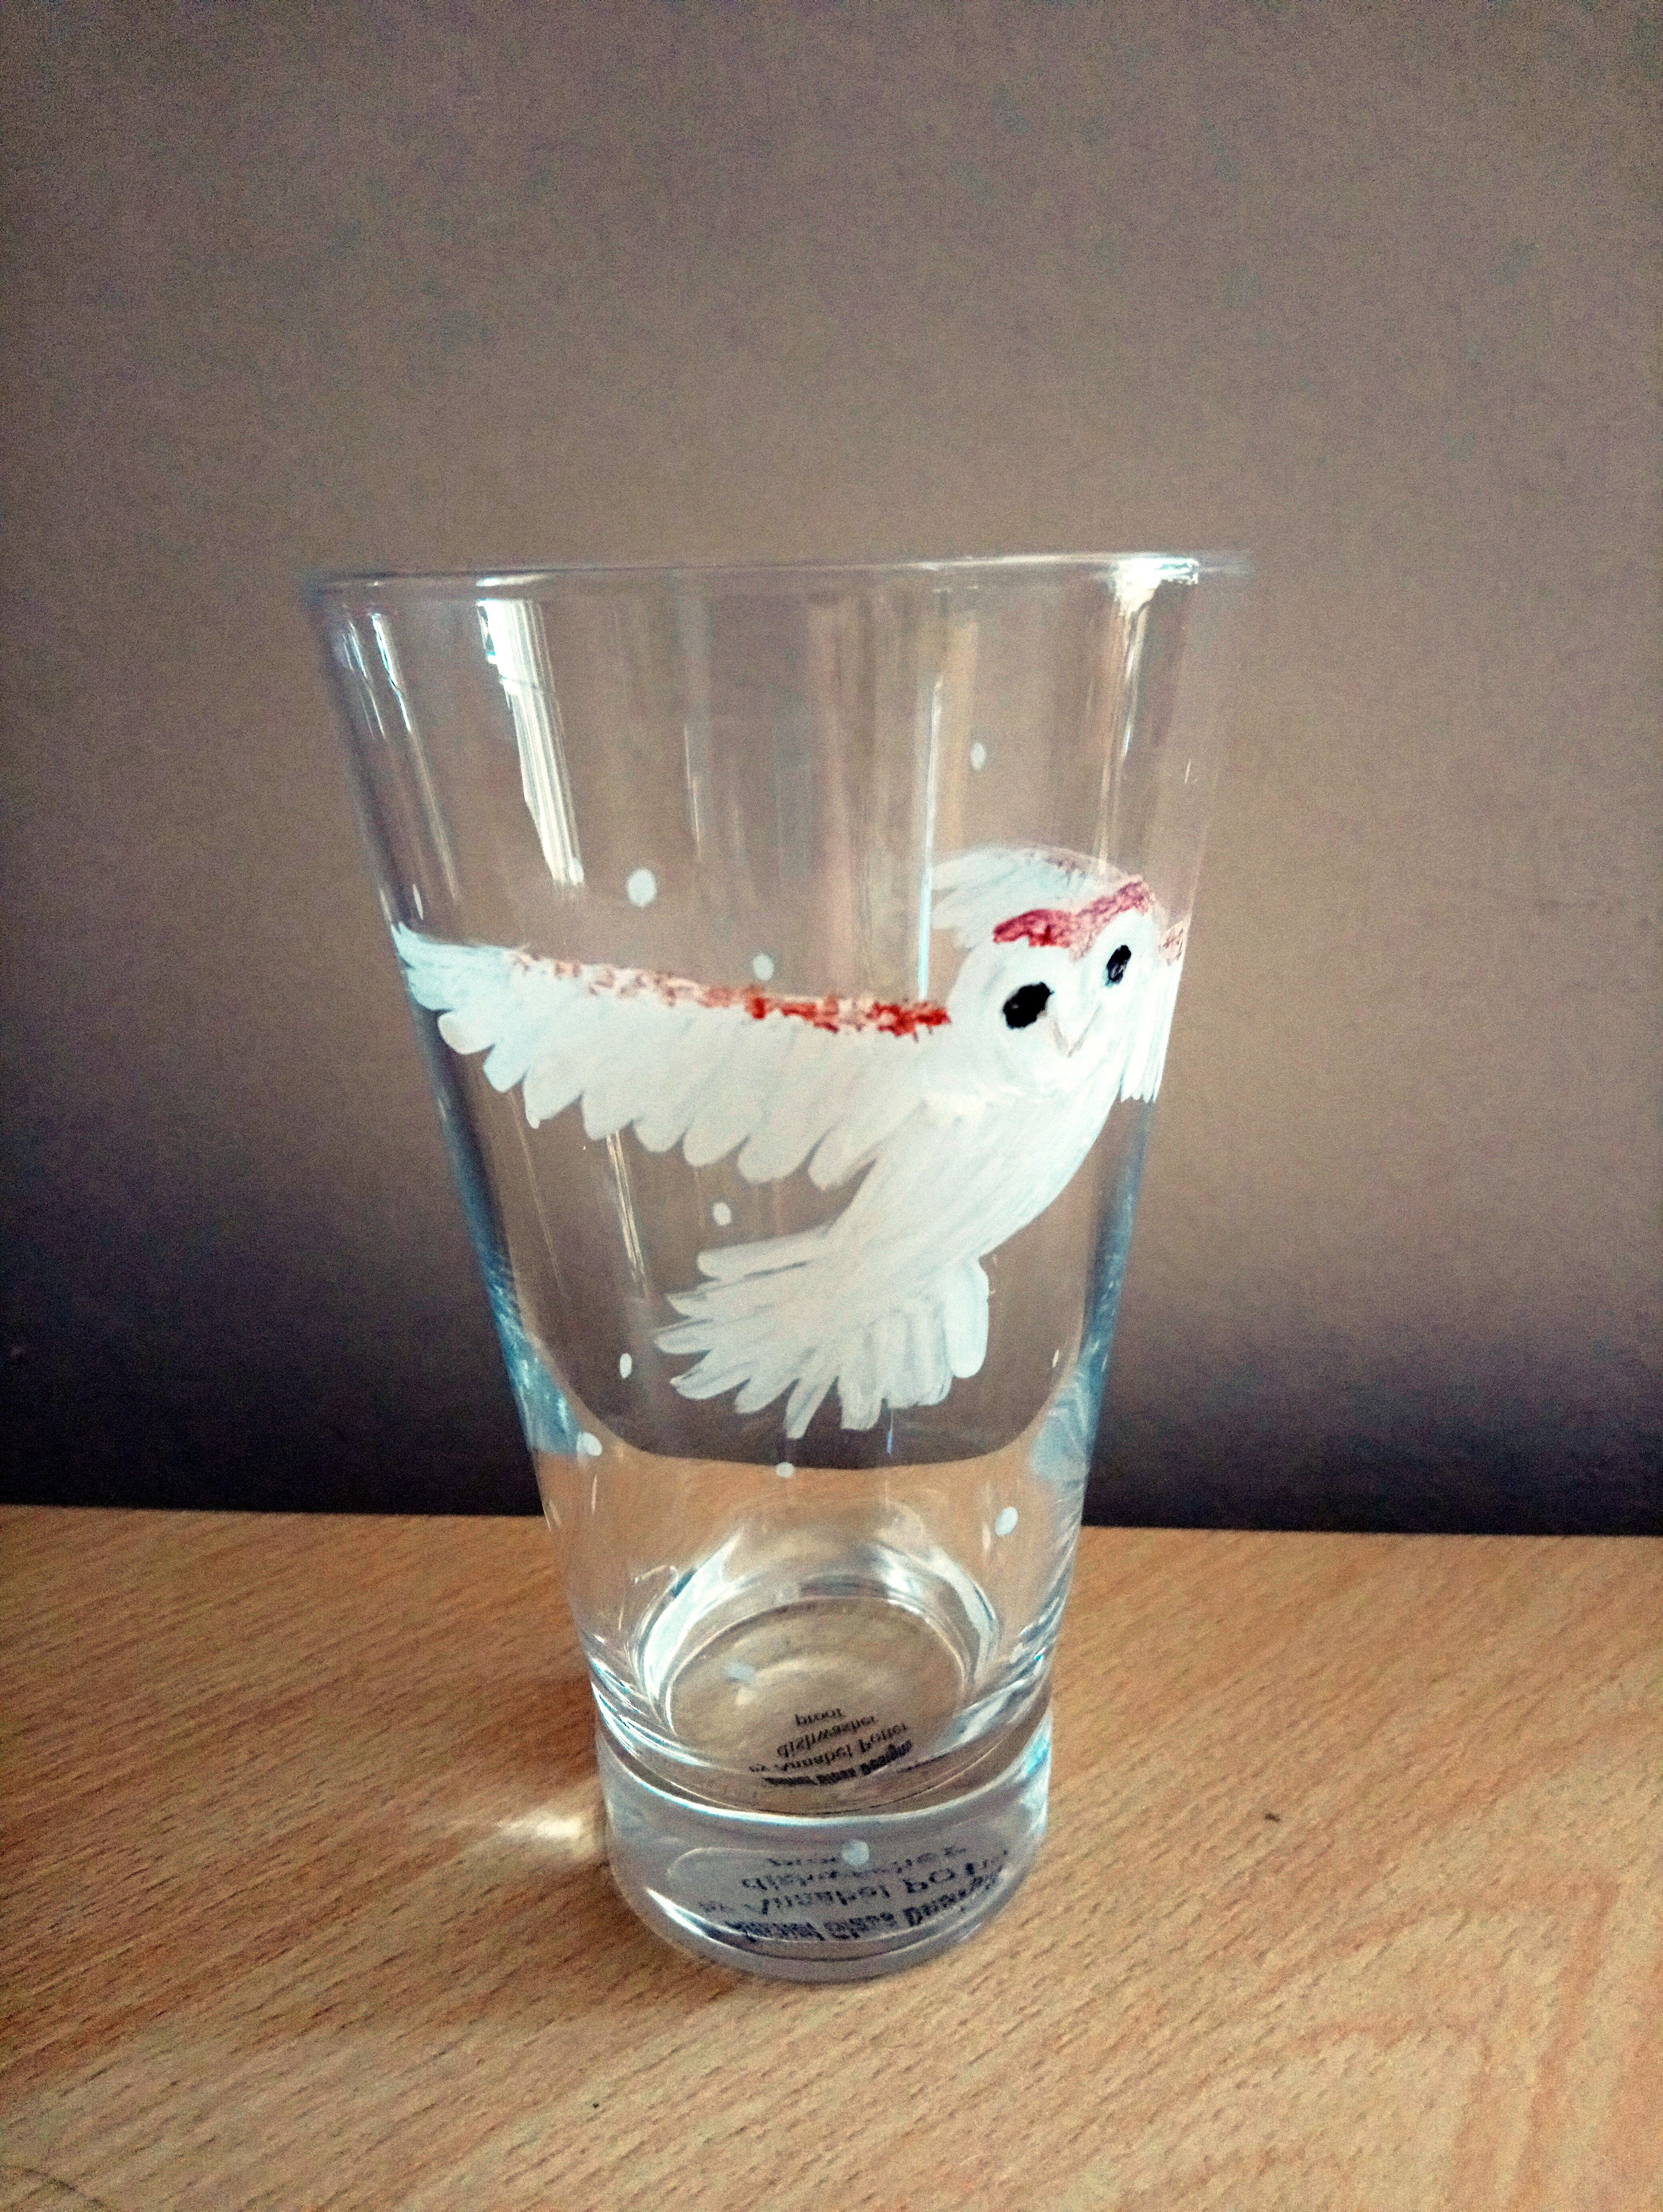 Barn owl glass vase from the front